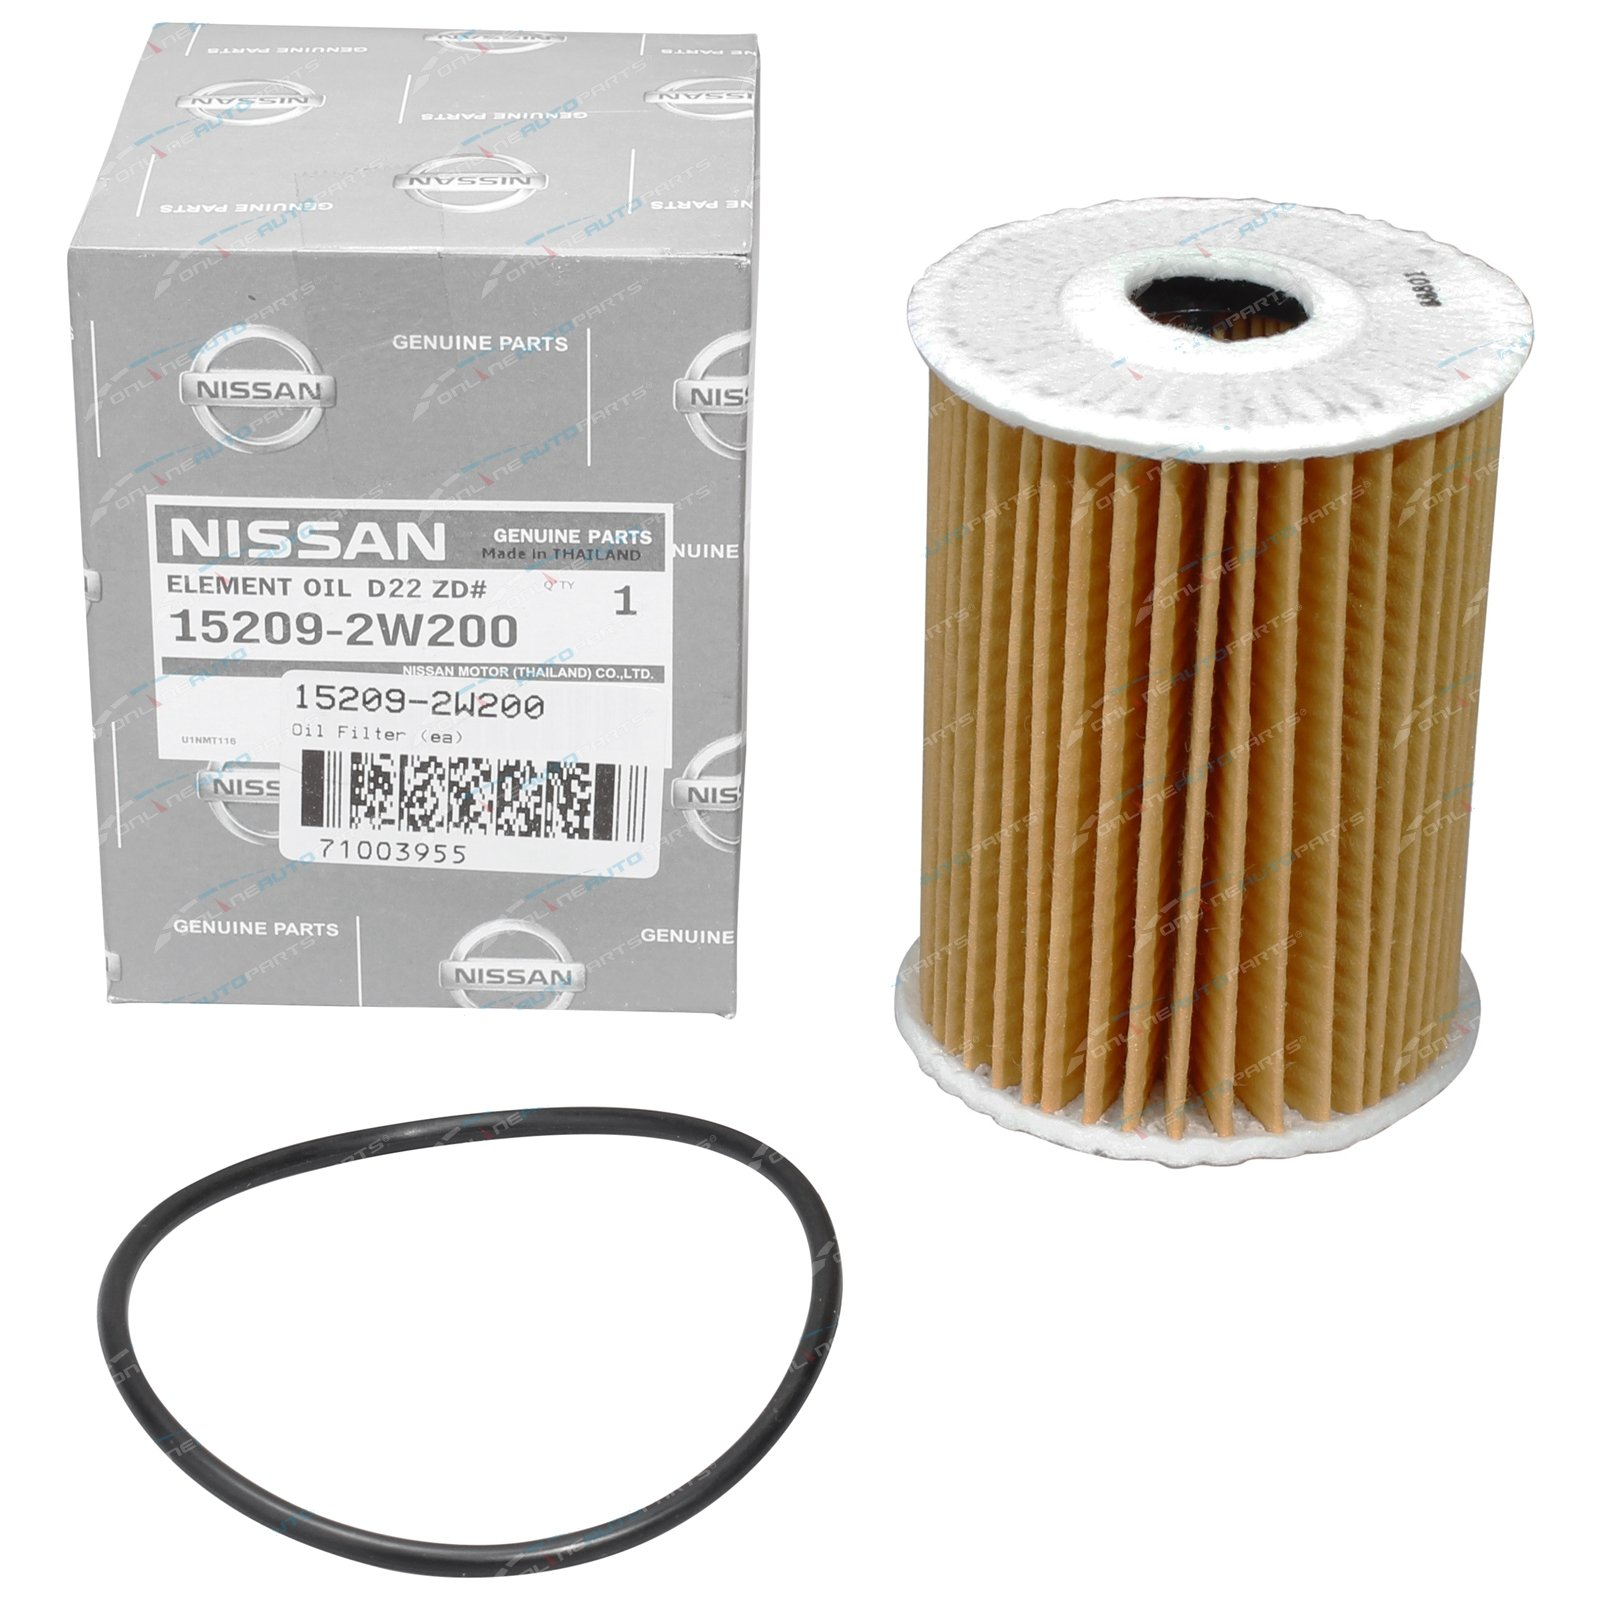 Oil Filter Genuine Nissan Patrol GU Y61 ZD30 3 0L Turbo Diesel Engine  2000-2012 ZD30DETI